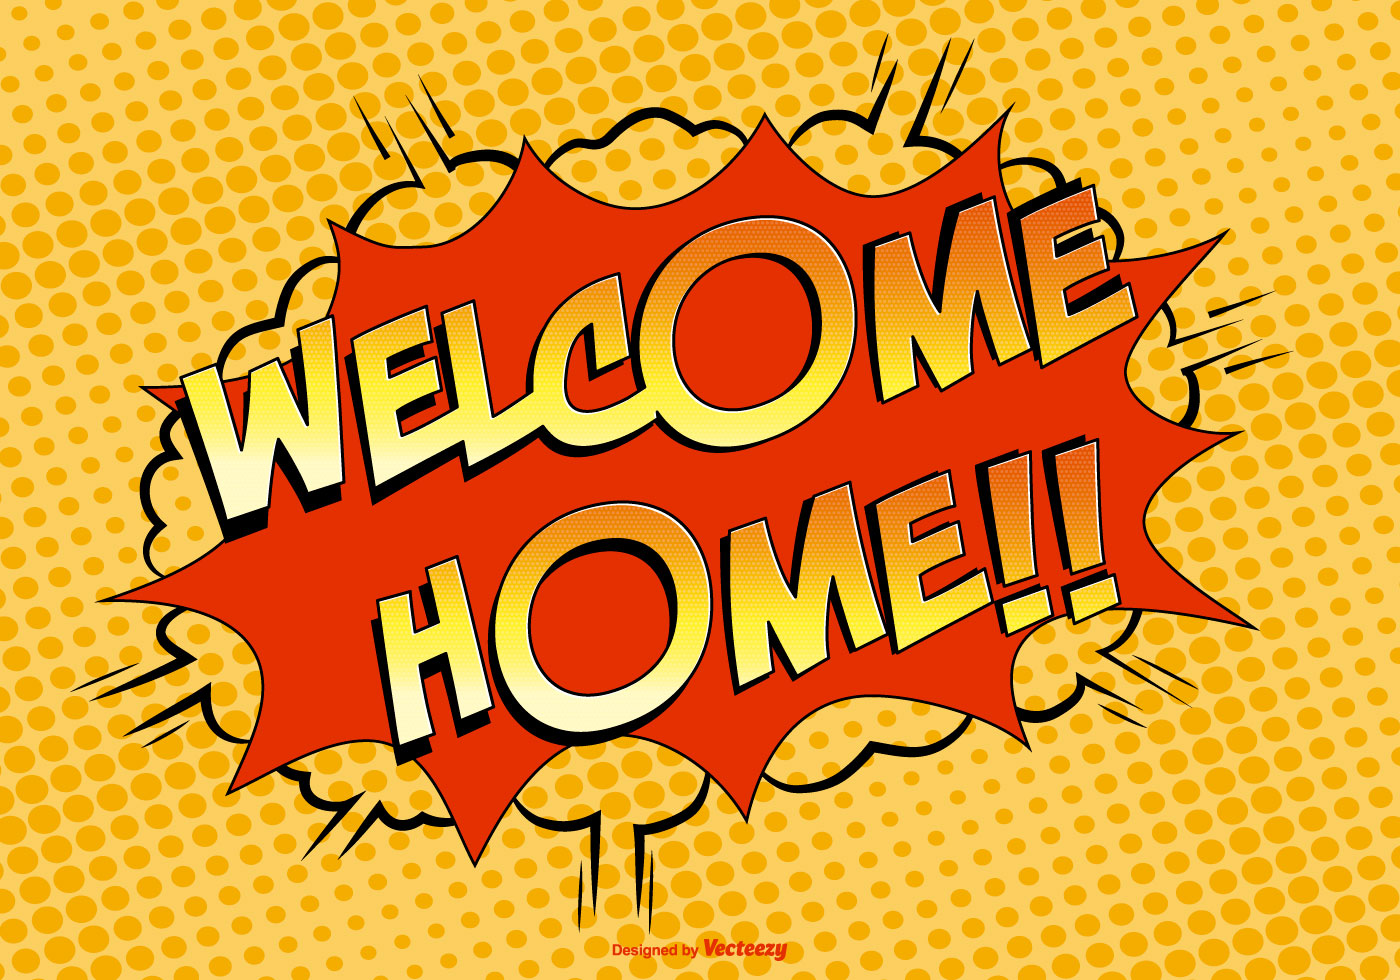 vector-welcome-home-comic-illustration.jpg